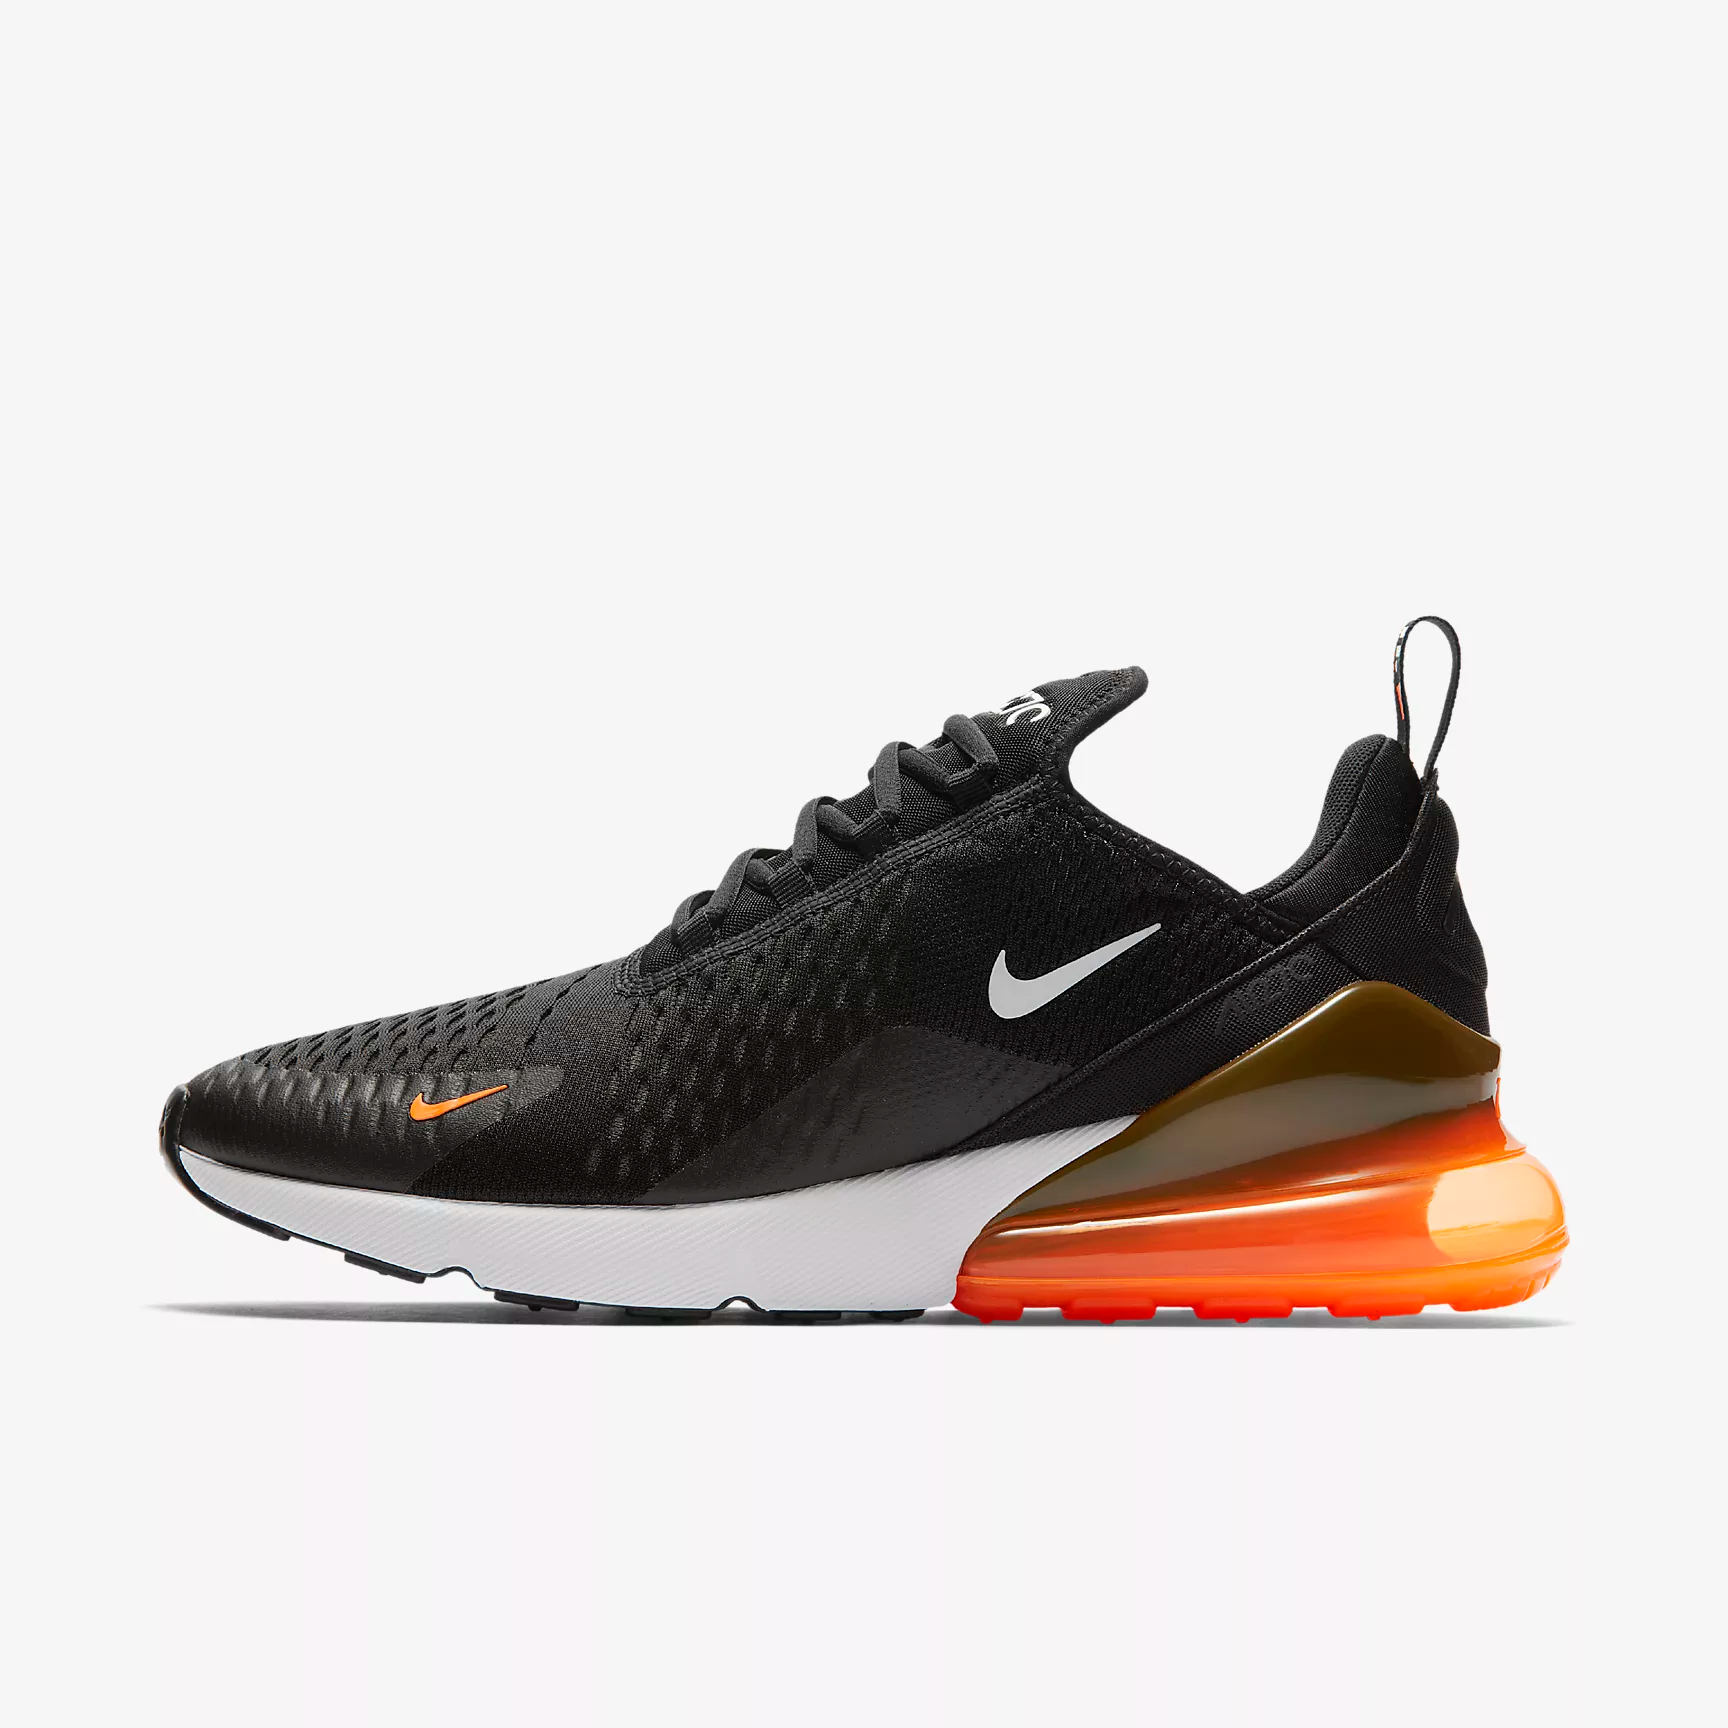 best authentic 3f6dd 2944e Cheap Nike Air Max 270 Fashion Sneakers Orange Red Black White On  VaporMaxRunning